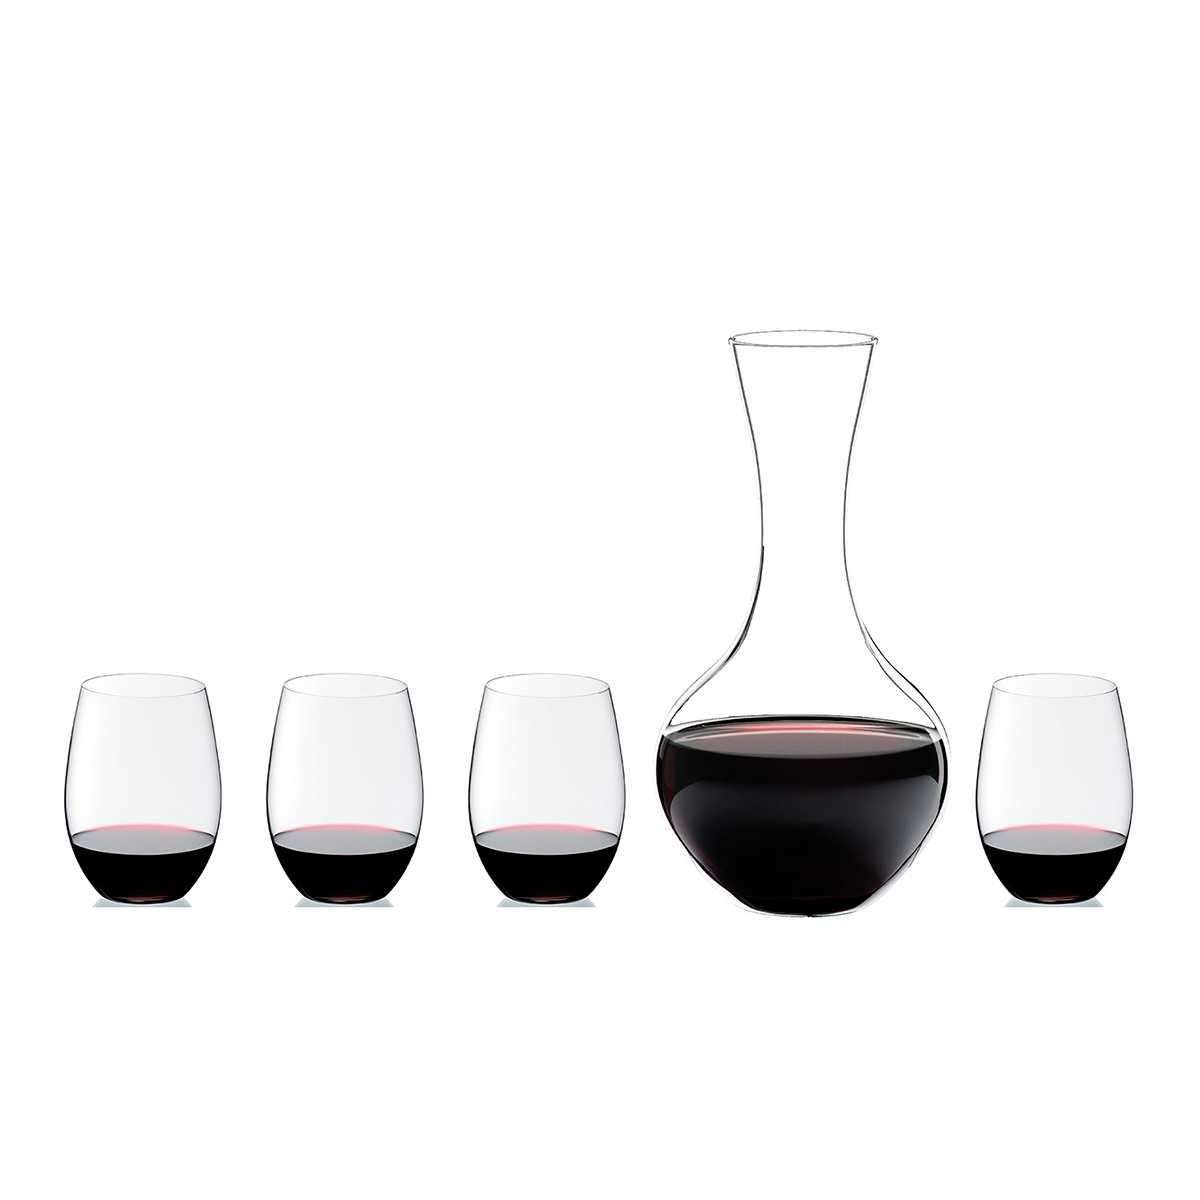 Онлайн каталог PROMENU: Набор для вина O RIEDEL _4 бокала для Cabernet O + Decanter, 5 шт Riedel 5414/30